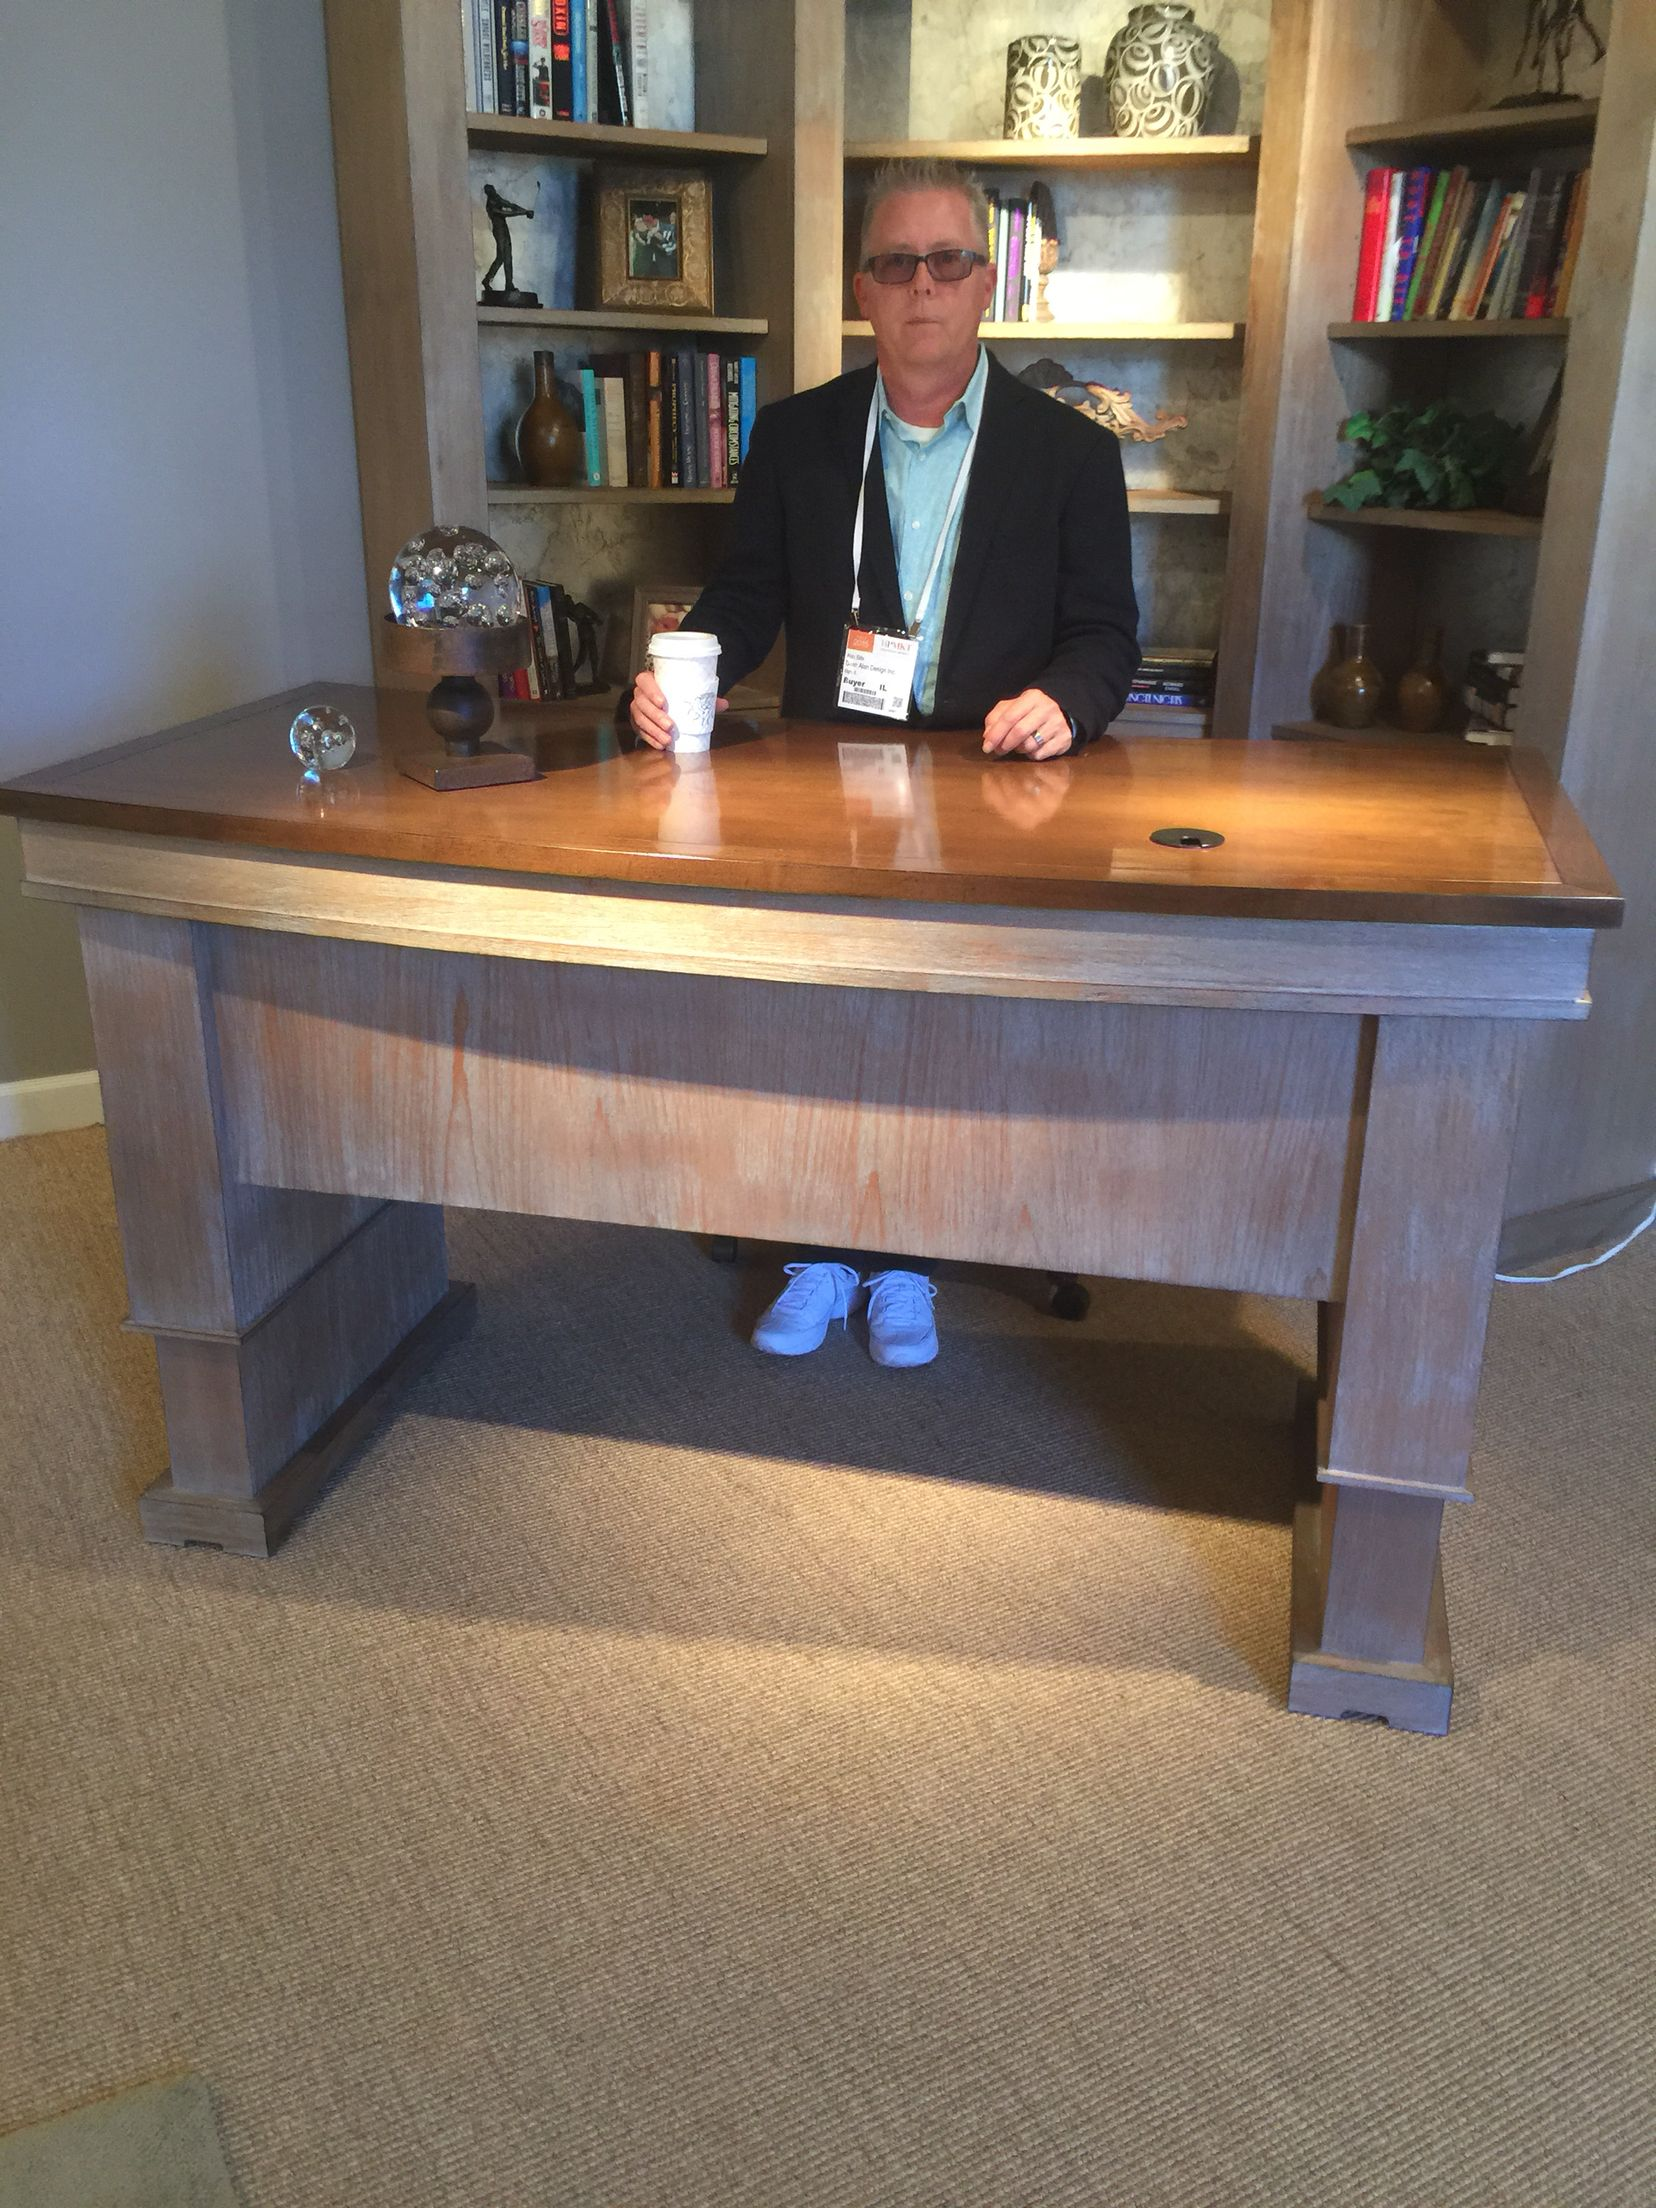 Sit down stand up desk with the push of a button the whole desk moves up and down